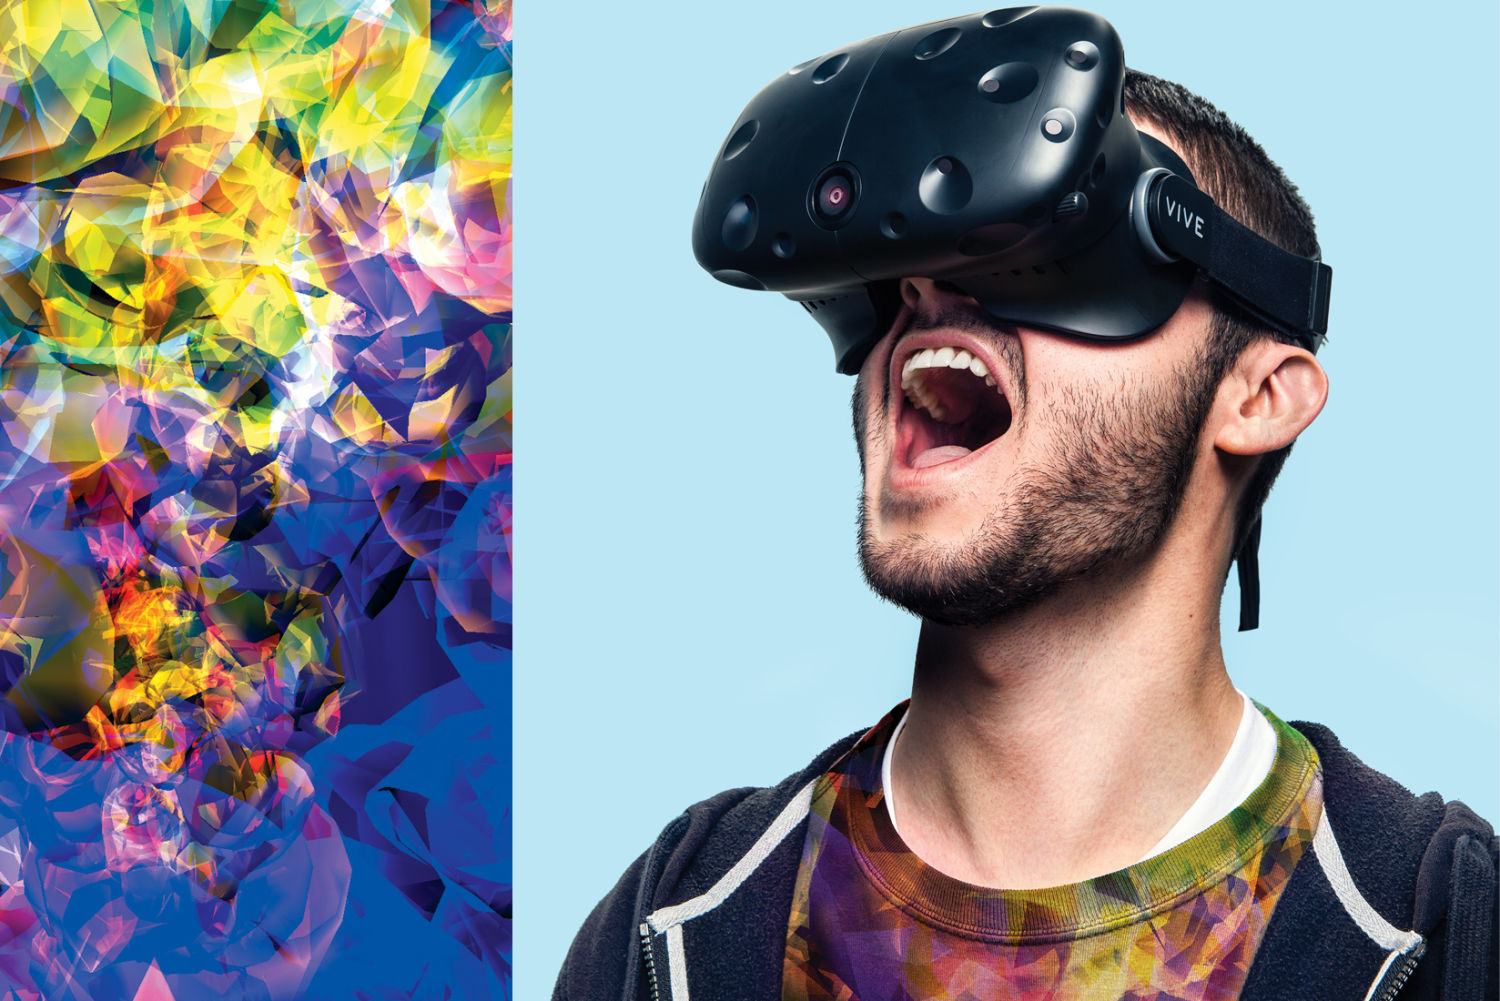 With Virtual and Augmented Reality, Seattle Is Inventing the